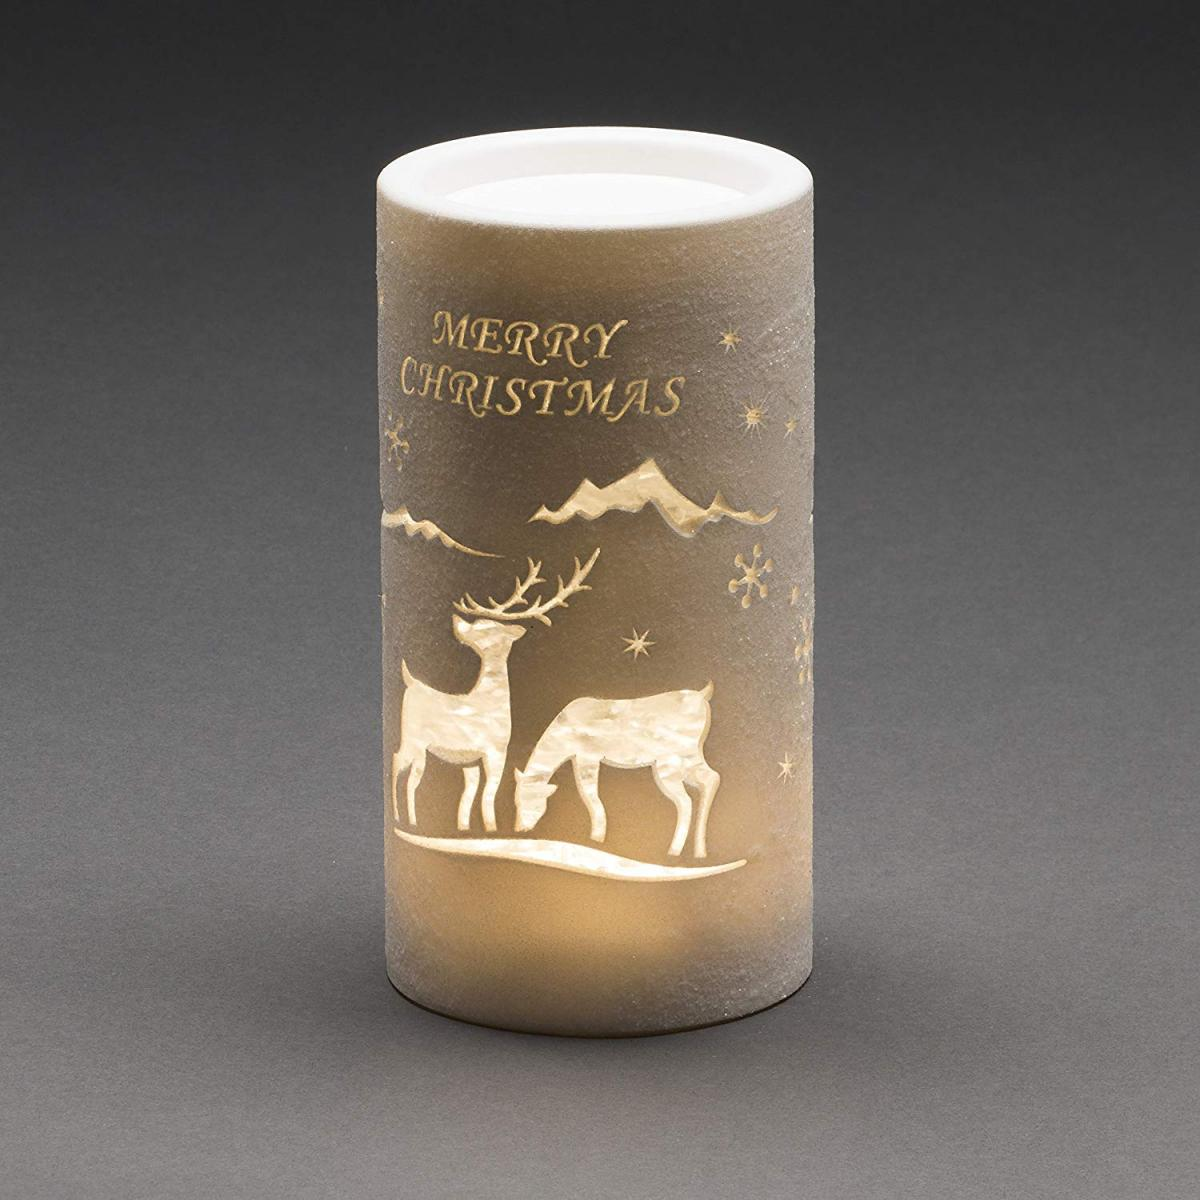 Water Filled Cylinder Lantern with Merry Christmas and Reindeer – Now Only £17.00